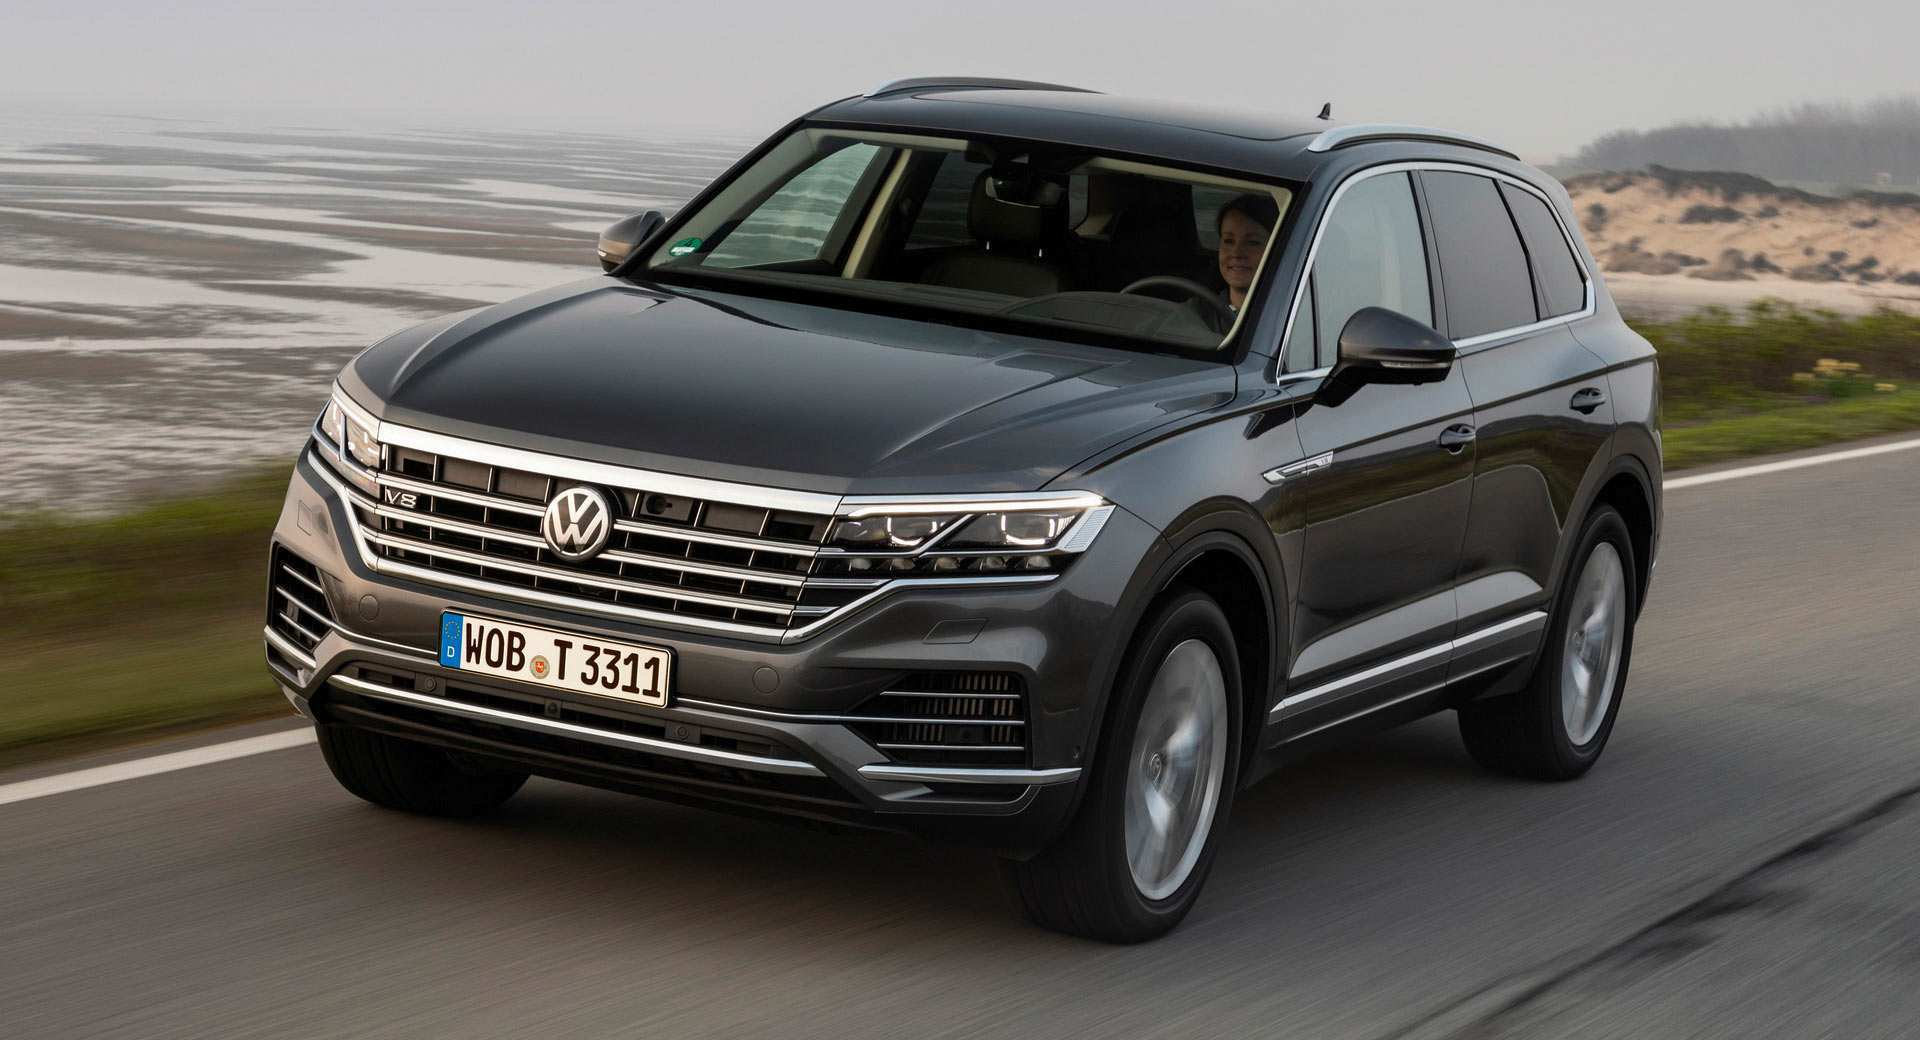 96 Best Volkswagen Touareg V8 Tdi 2020 Review And Release Date